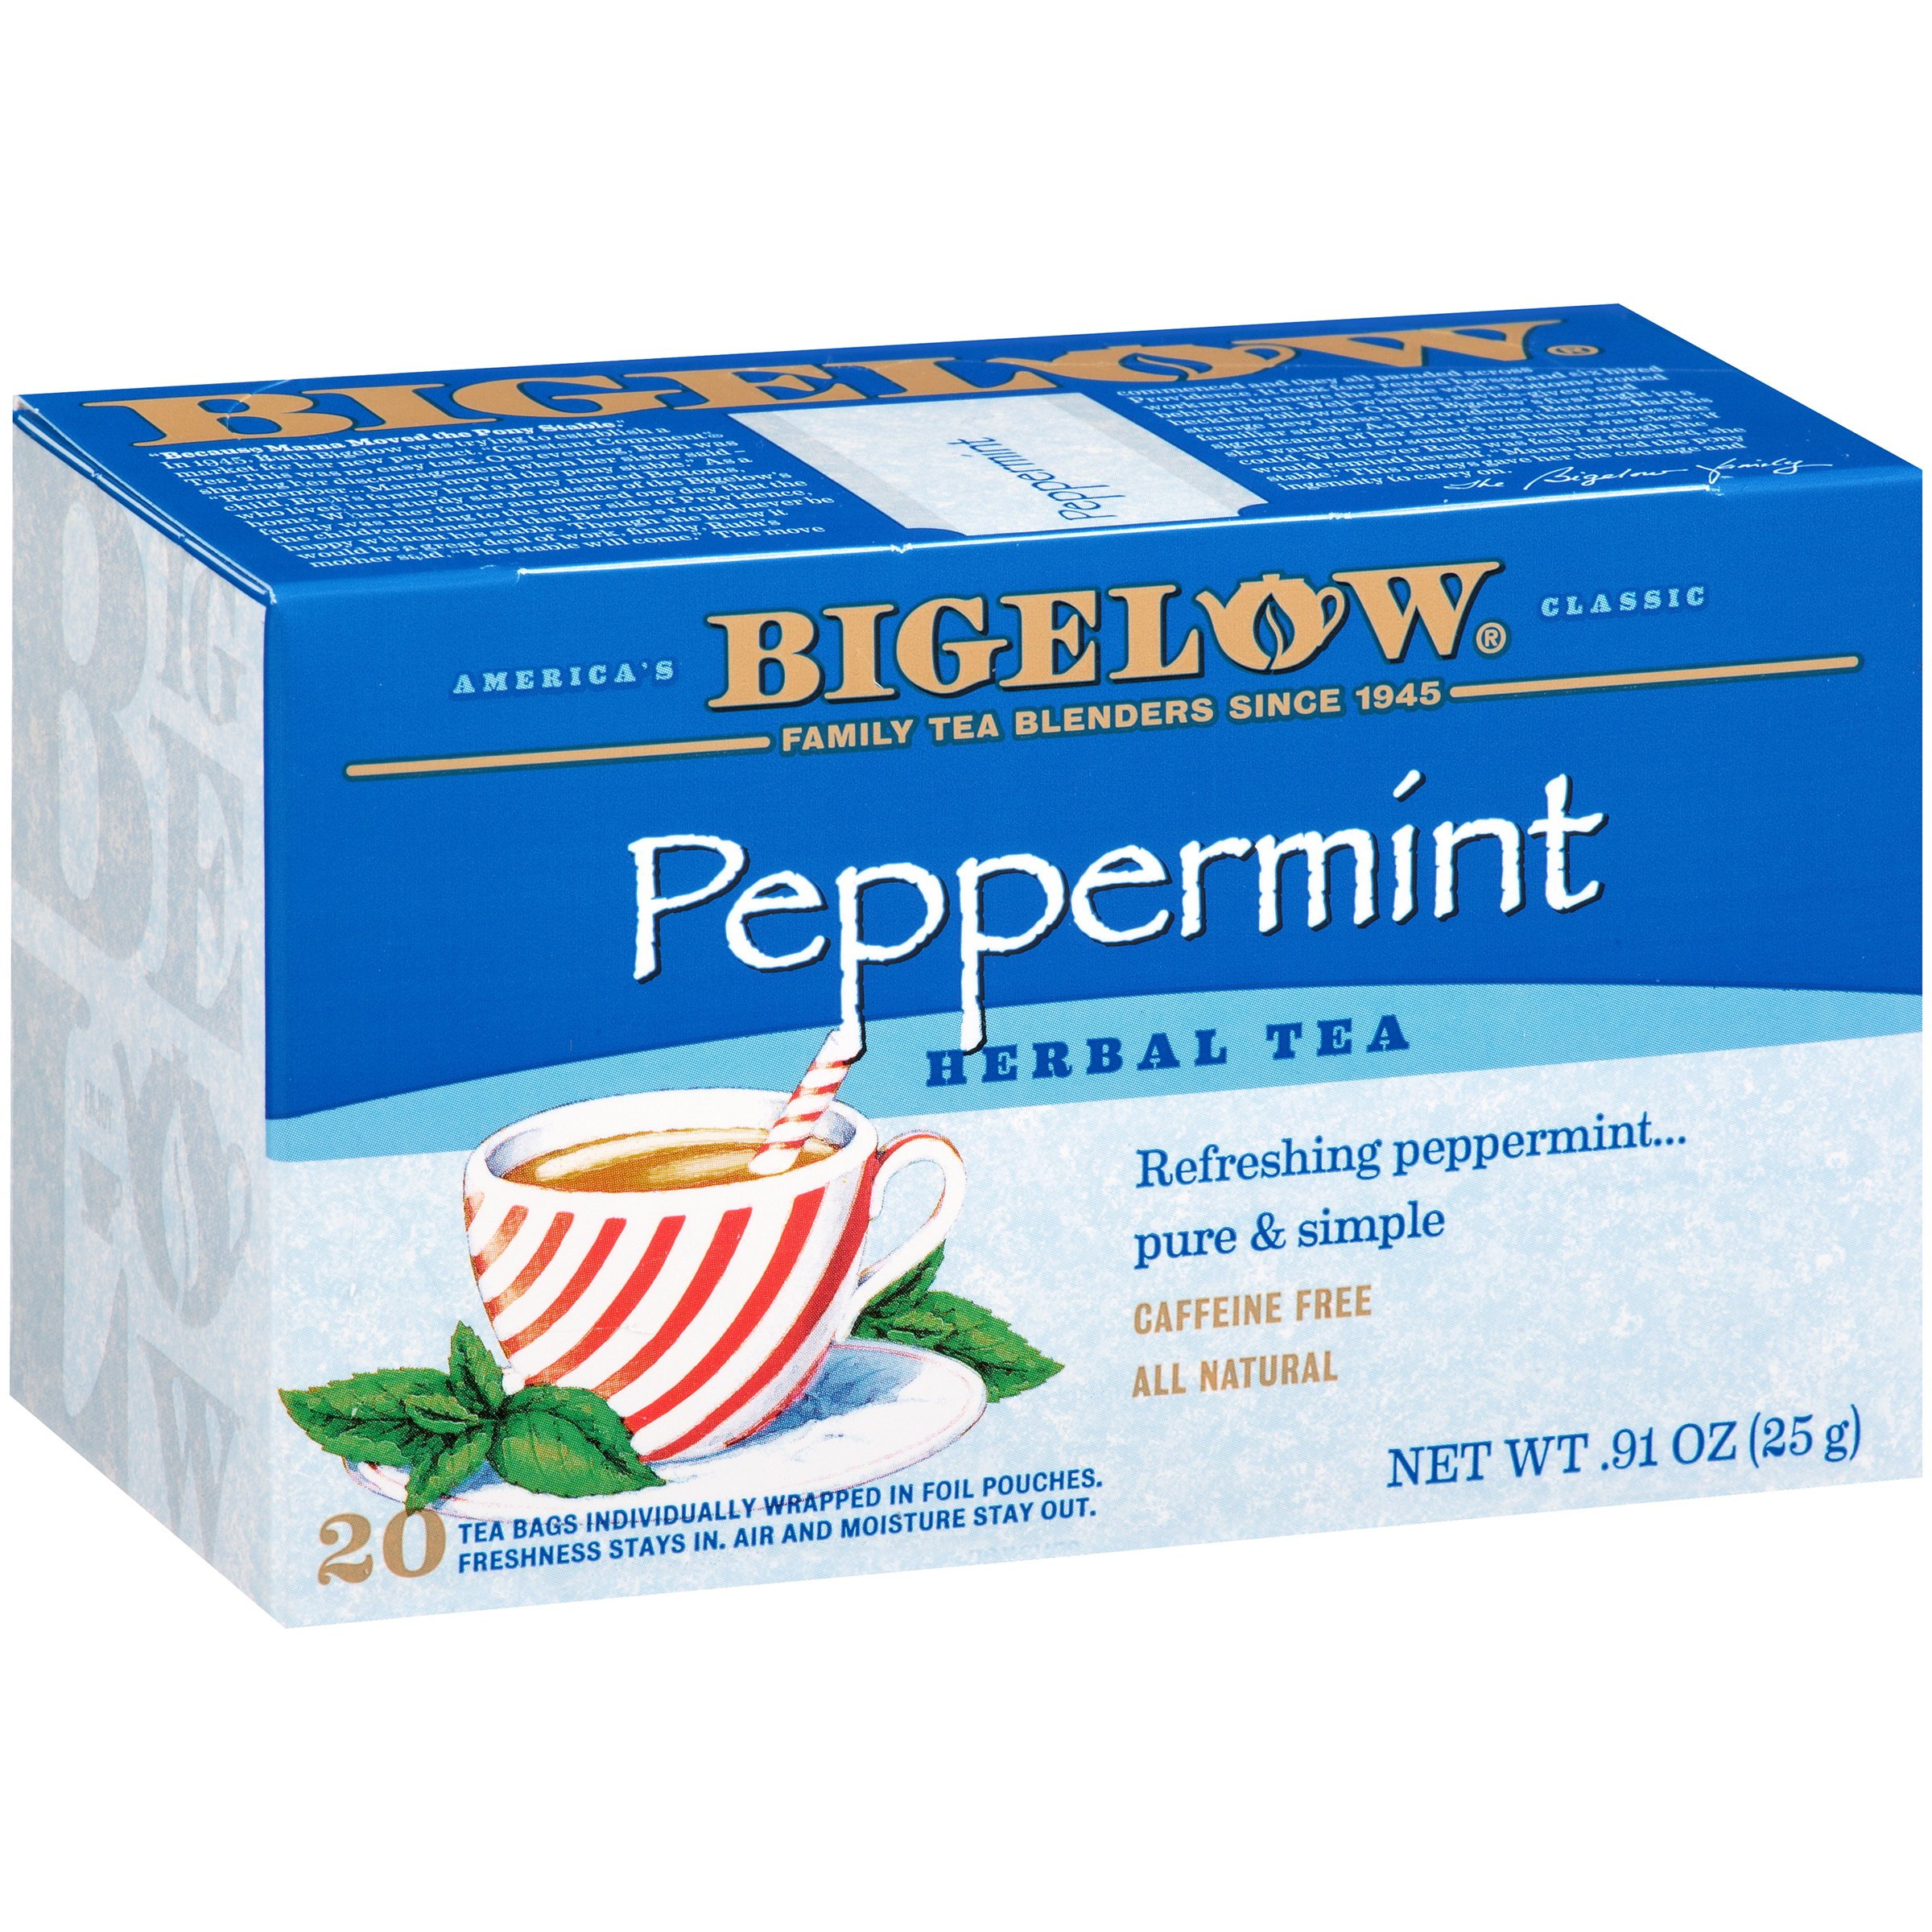 Bigelow Peppermint All Natural Caffeine Free Herb Tea Bags, 20 count by RC Bigelow, Inc.©